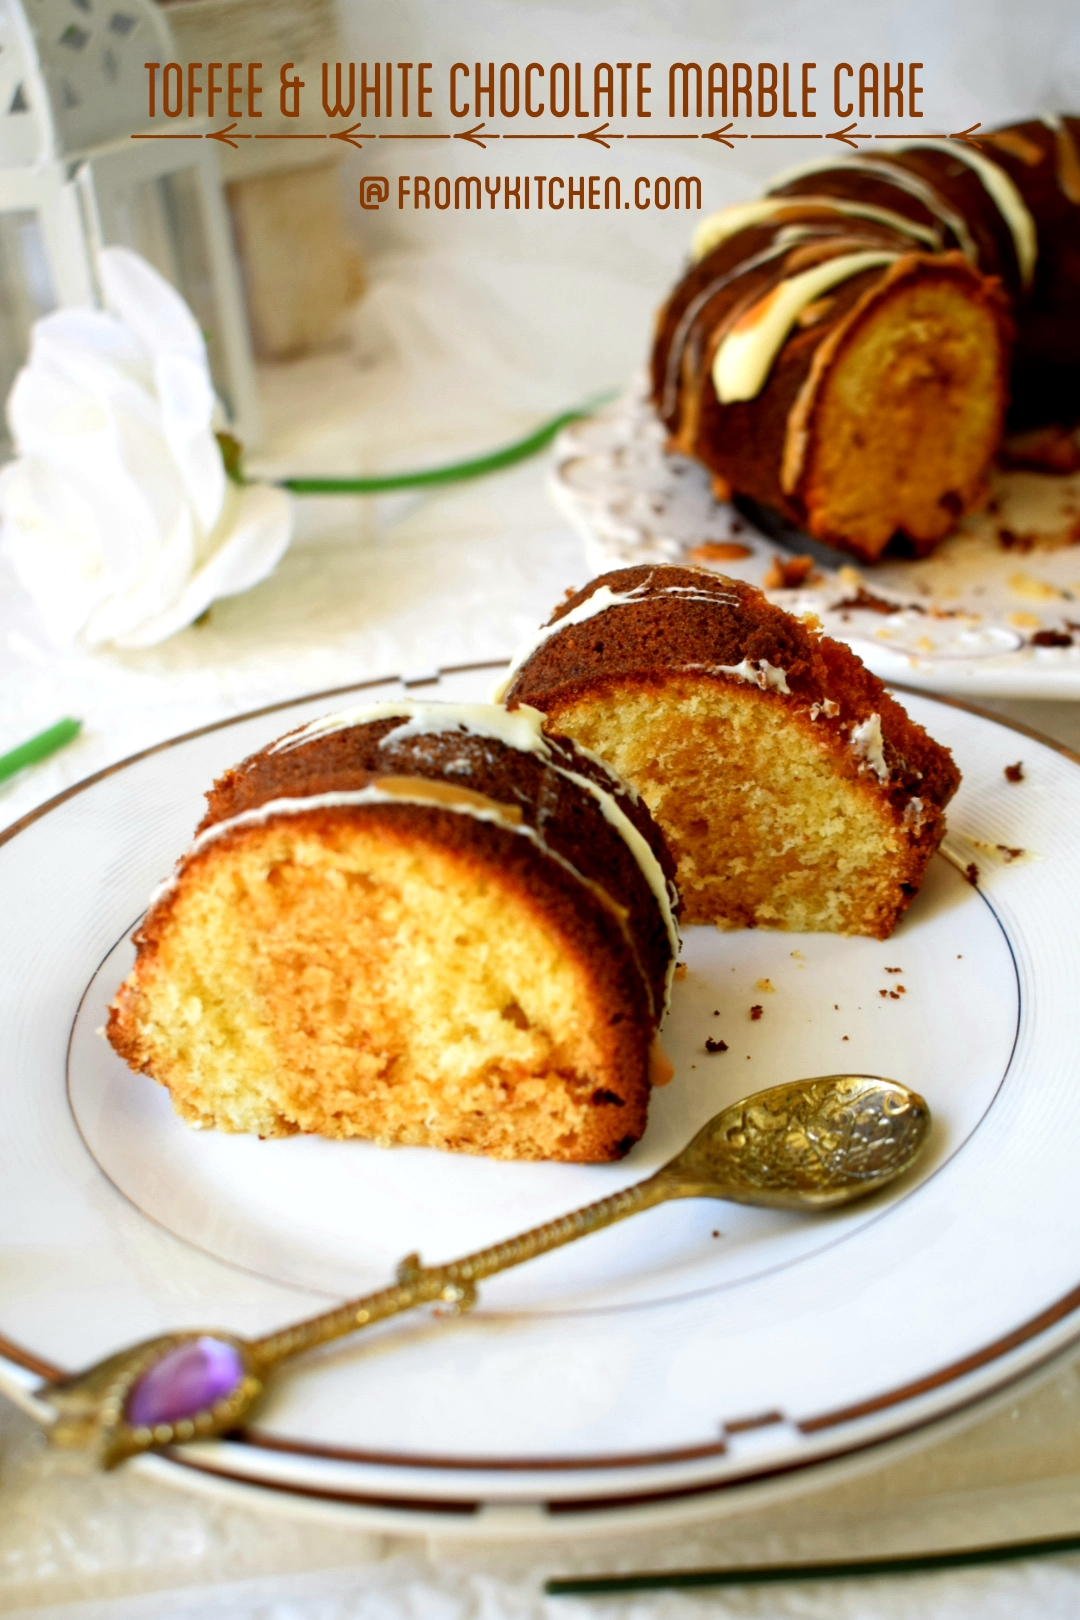 Toffee & White Chocolate Marble Cake